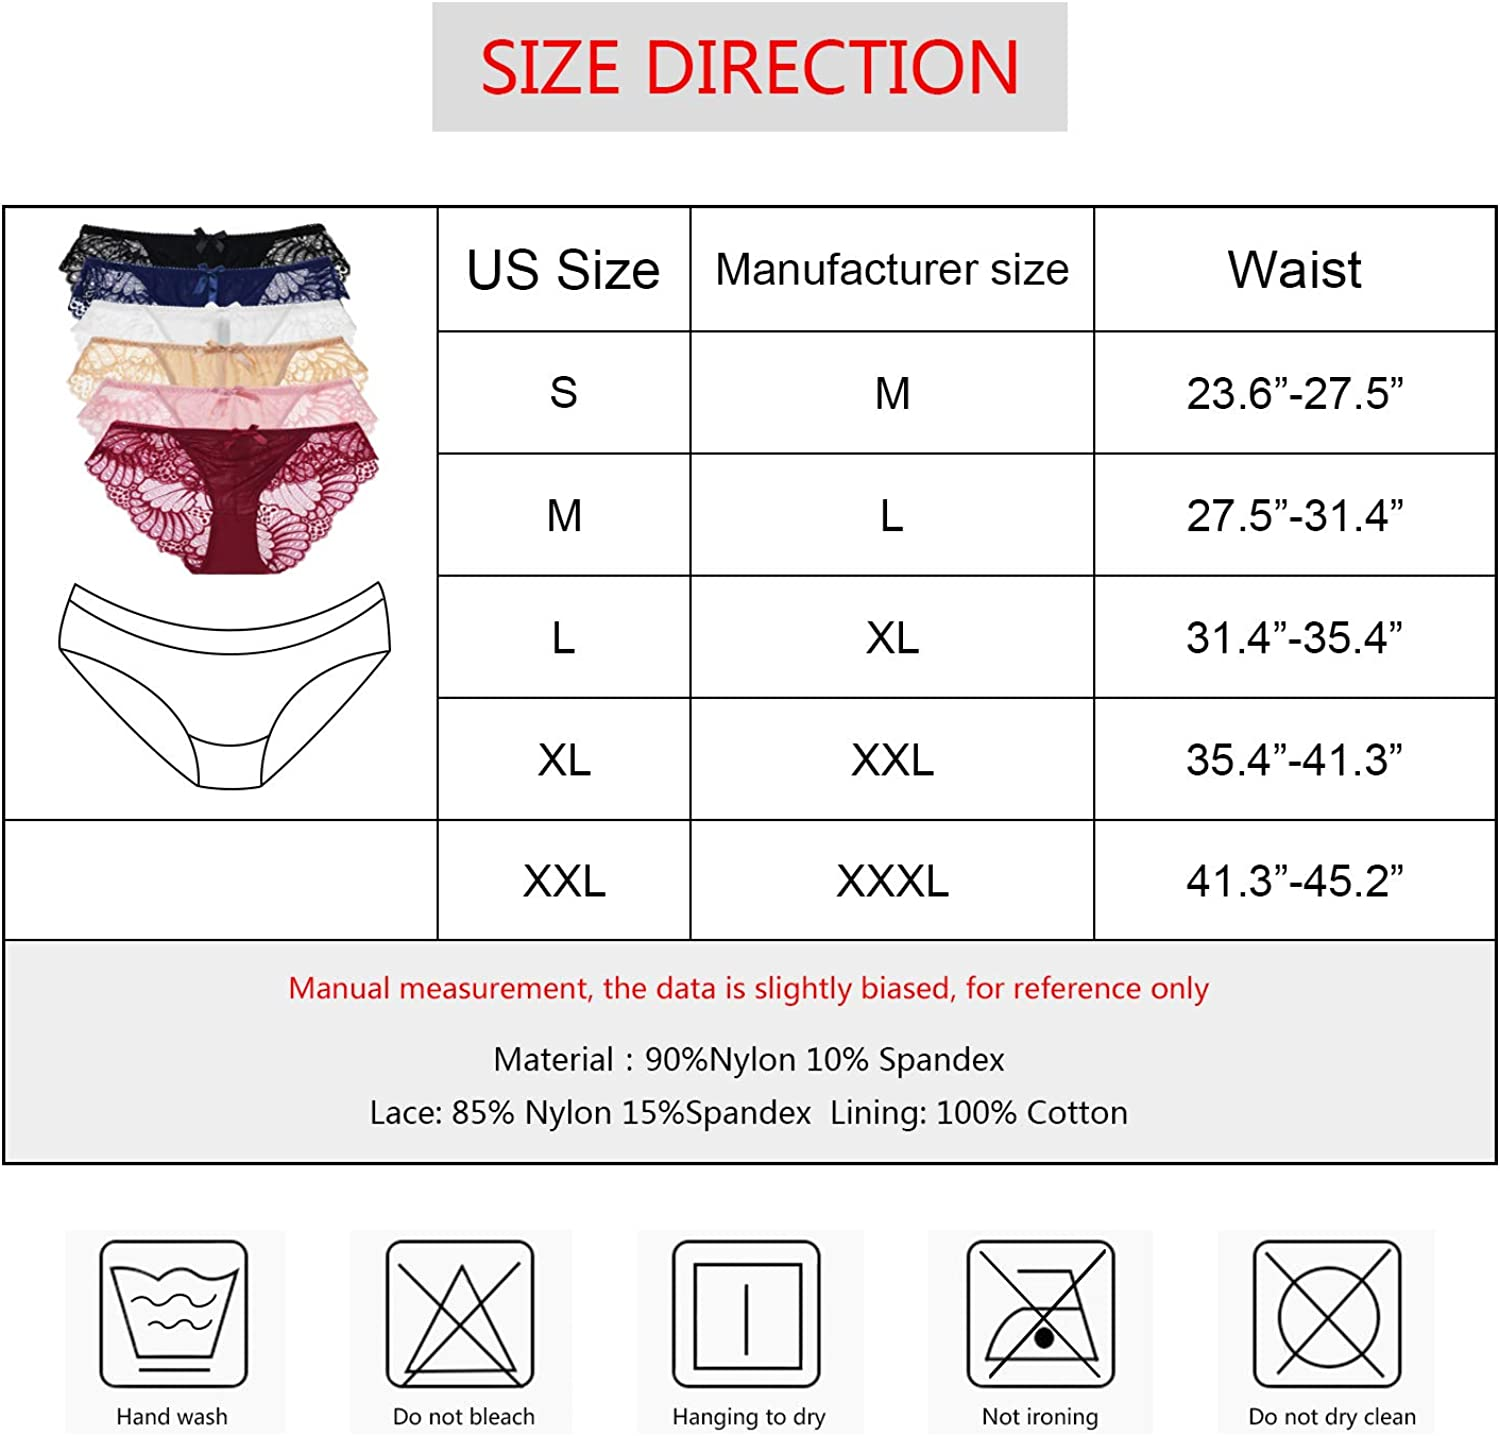 DRESHOW 6 Pack Women/'s Lace Underwear Bikini Panties Seamless Soft Briefs Underpants Lace Hipster for Women